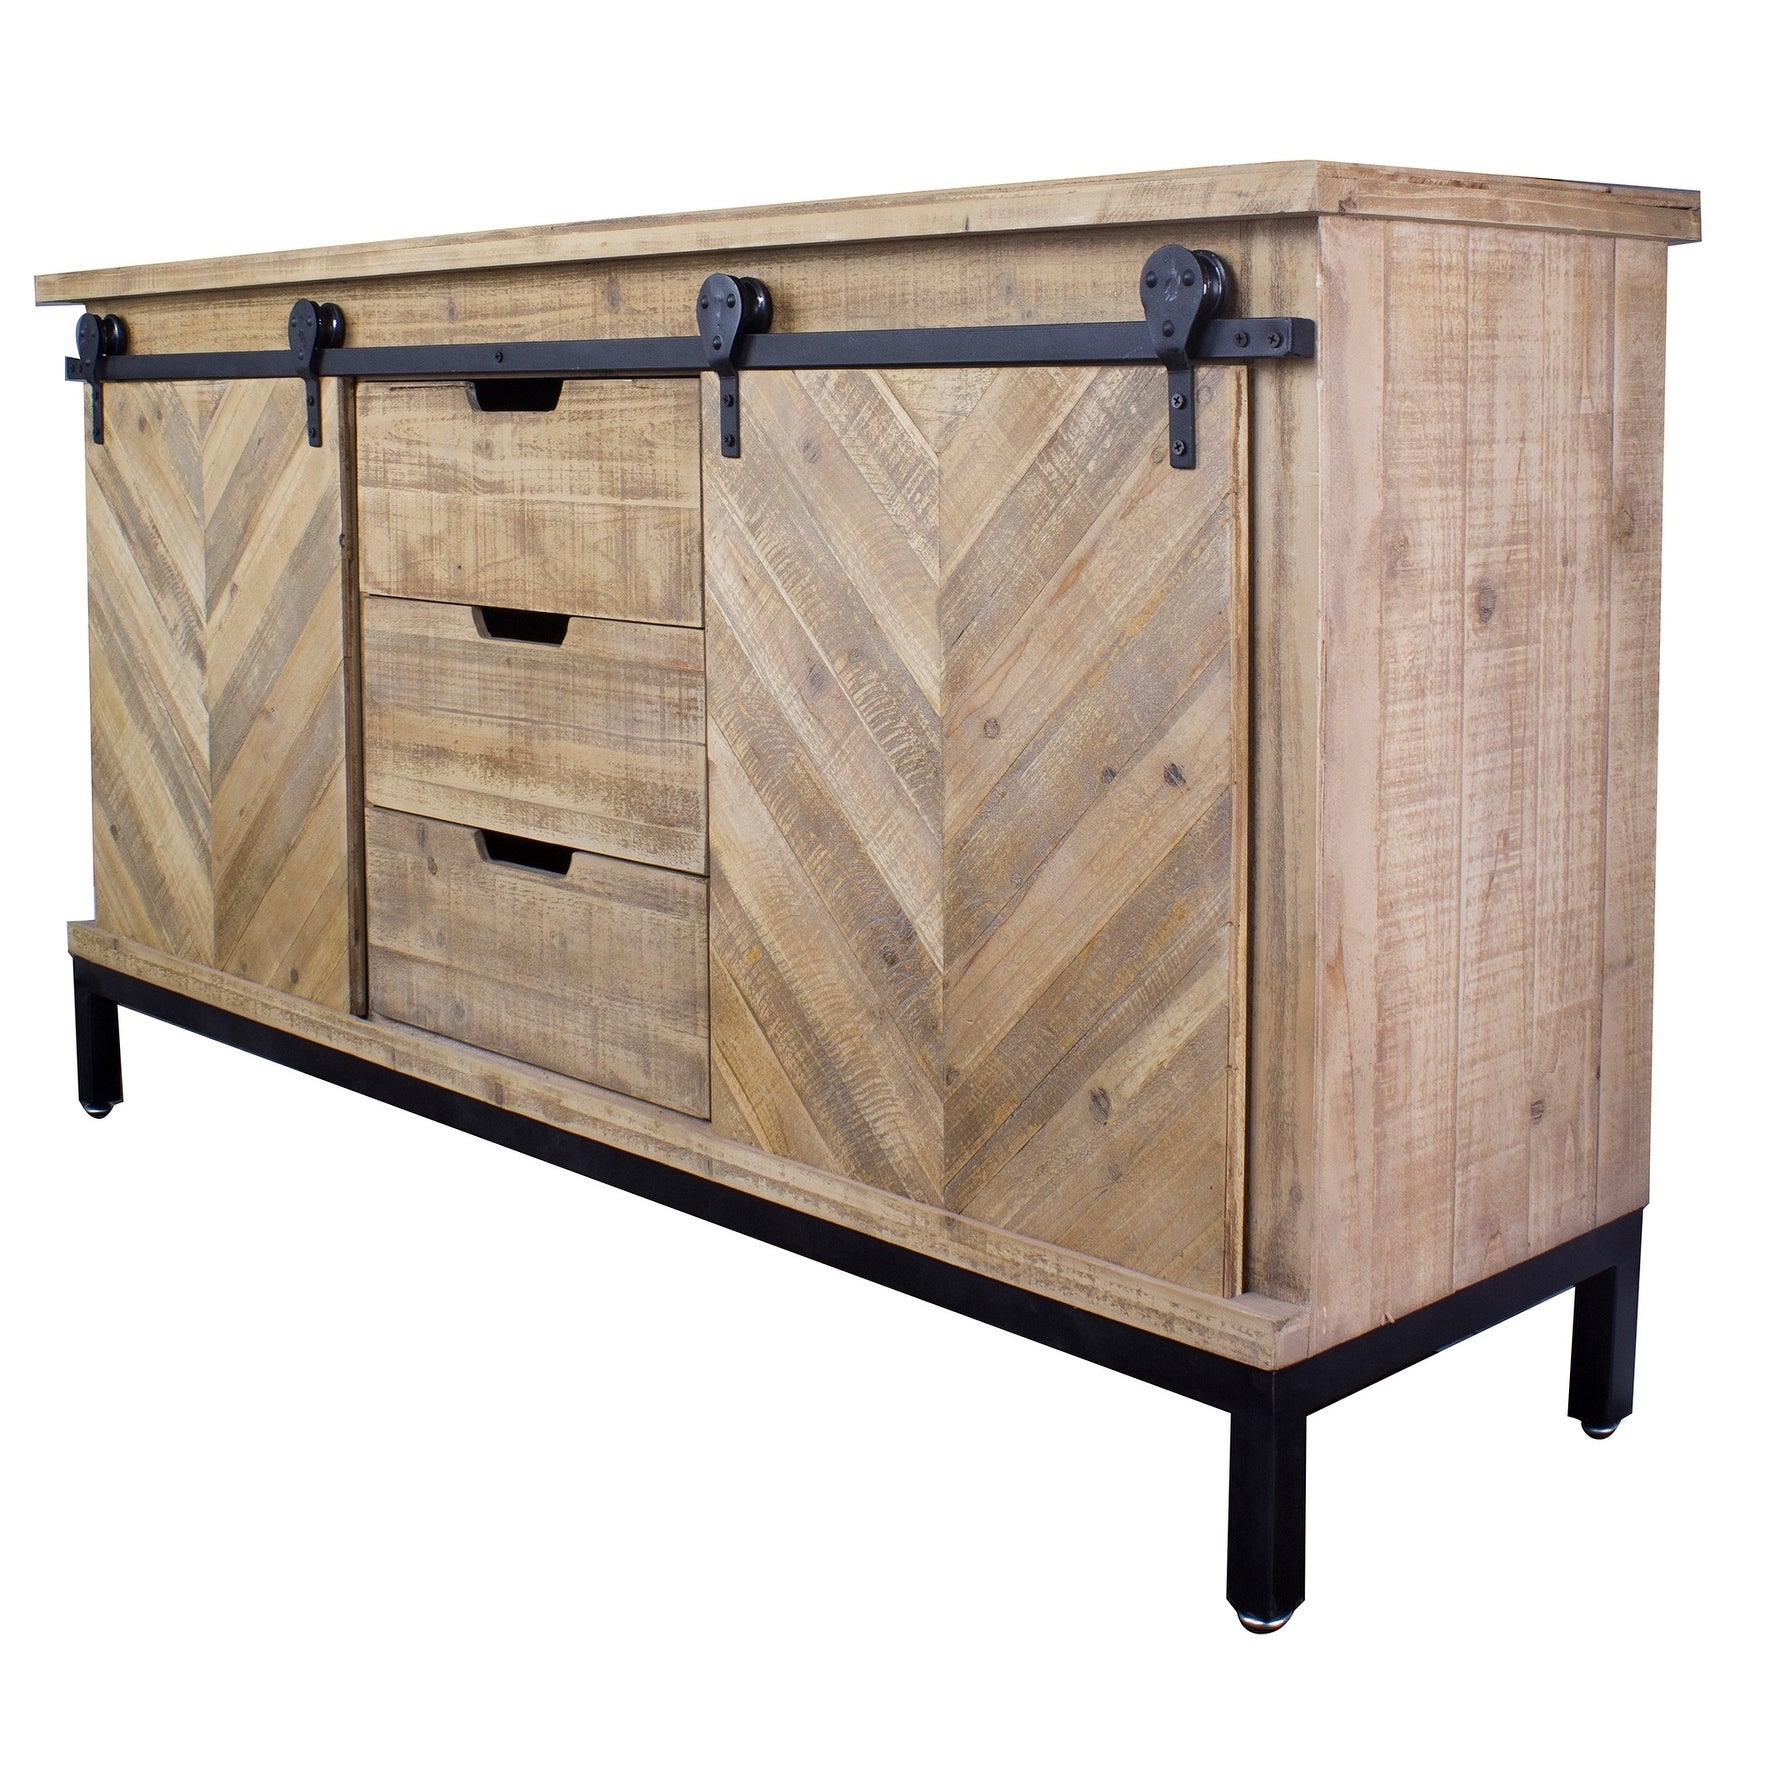 Charmant Shop Knightsbridge Barndoor Mid Century Wood And Metal Buffet Cabinet    Free Shipping Today   Overstock.com   19759055